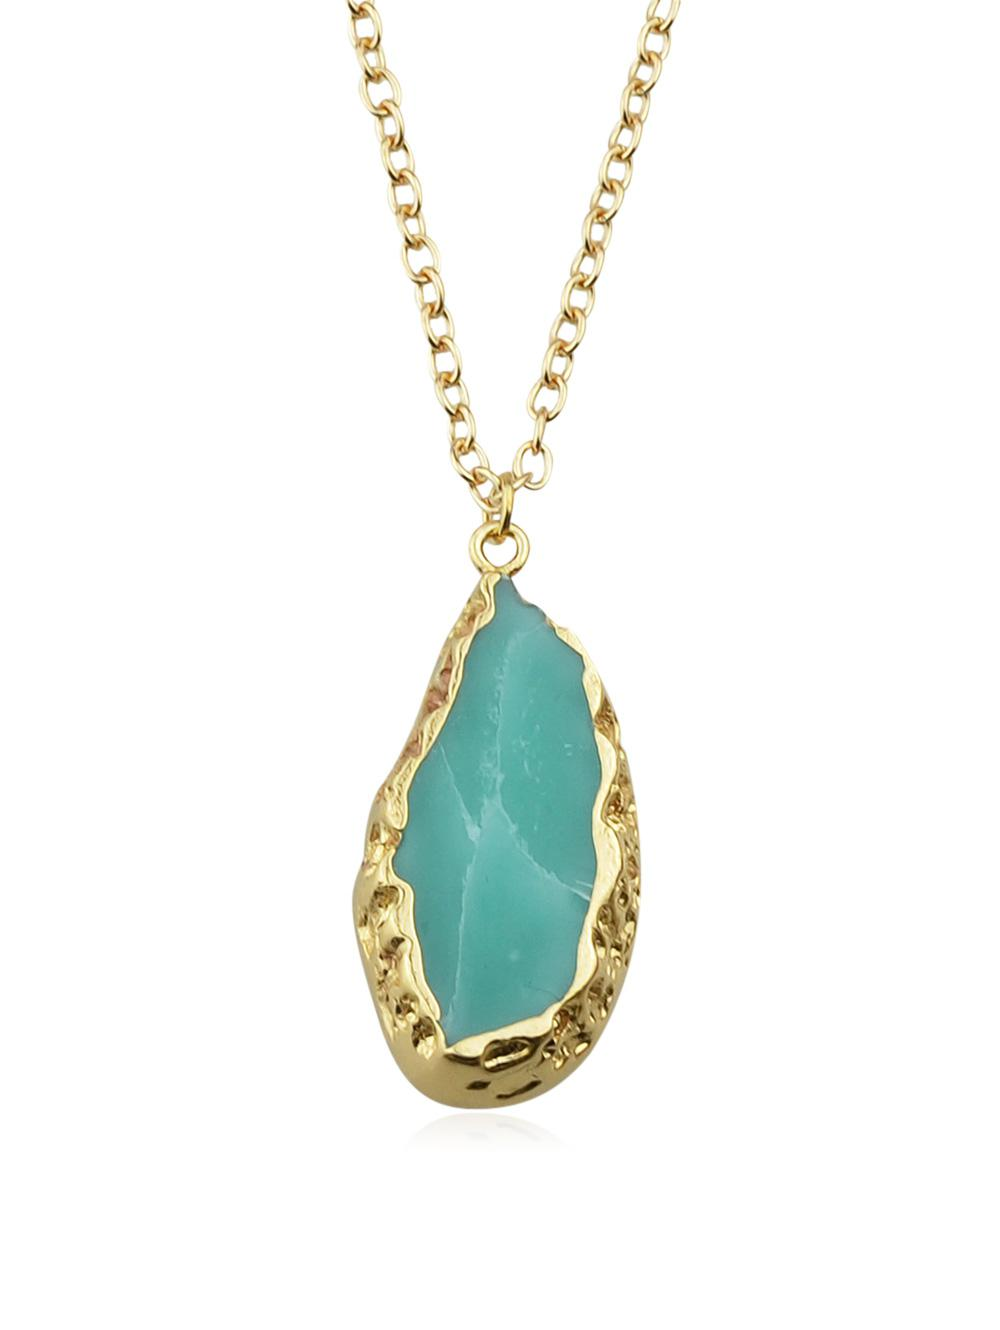 Green Natural Stone Pendant Chain Necklace, Macaw blue green